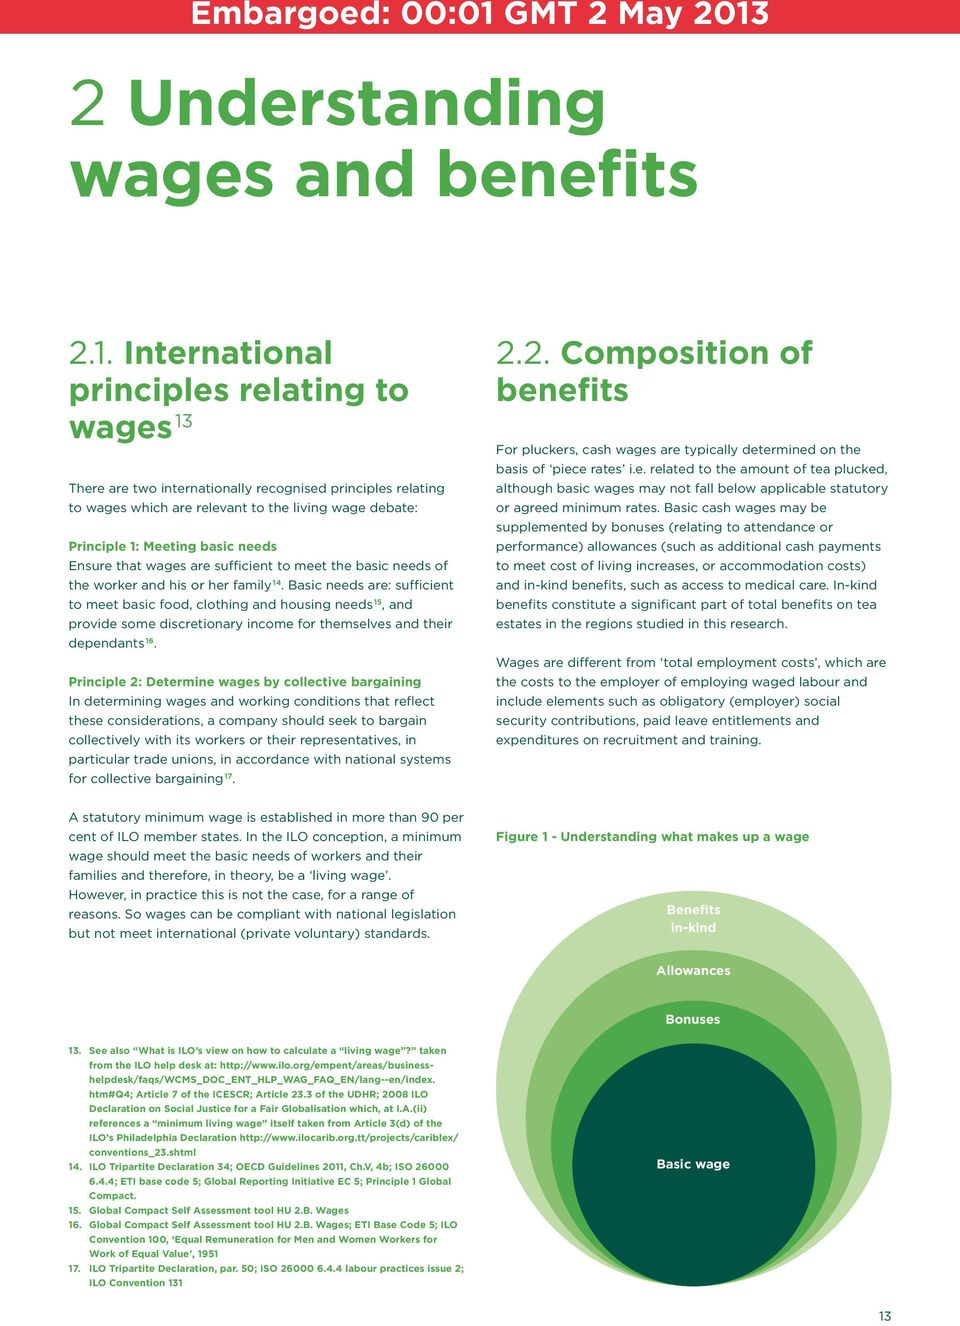 Ensure that wages are sufficient to meet the basic needs of the worker and his or her family 14.